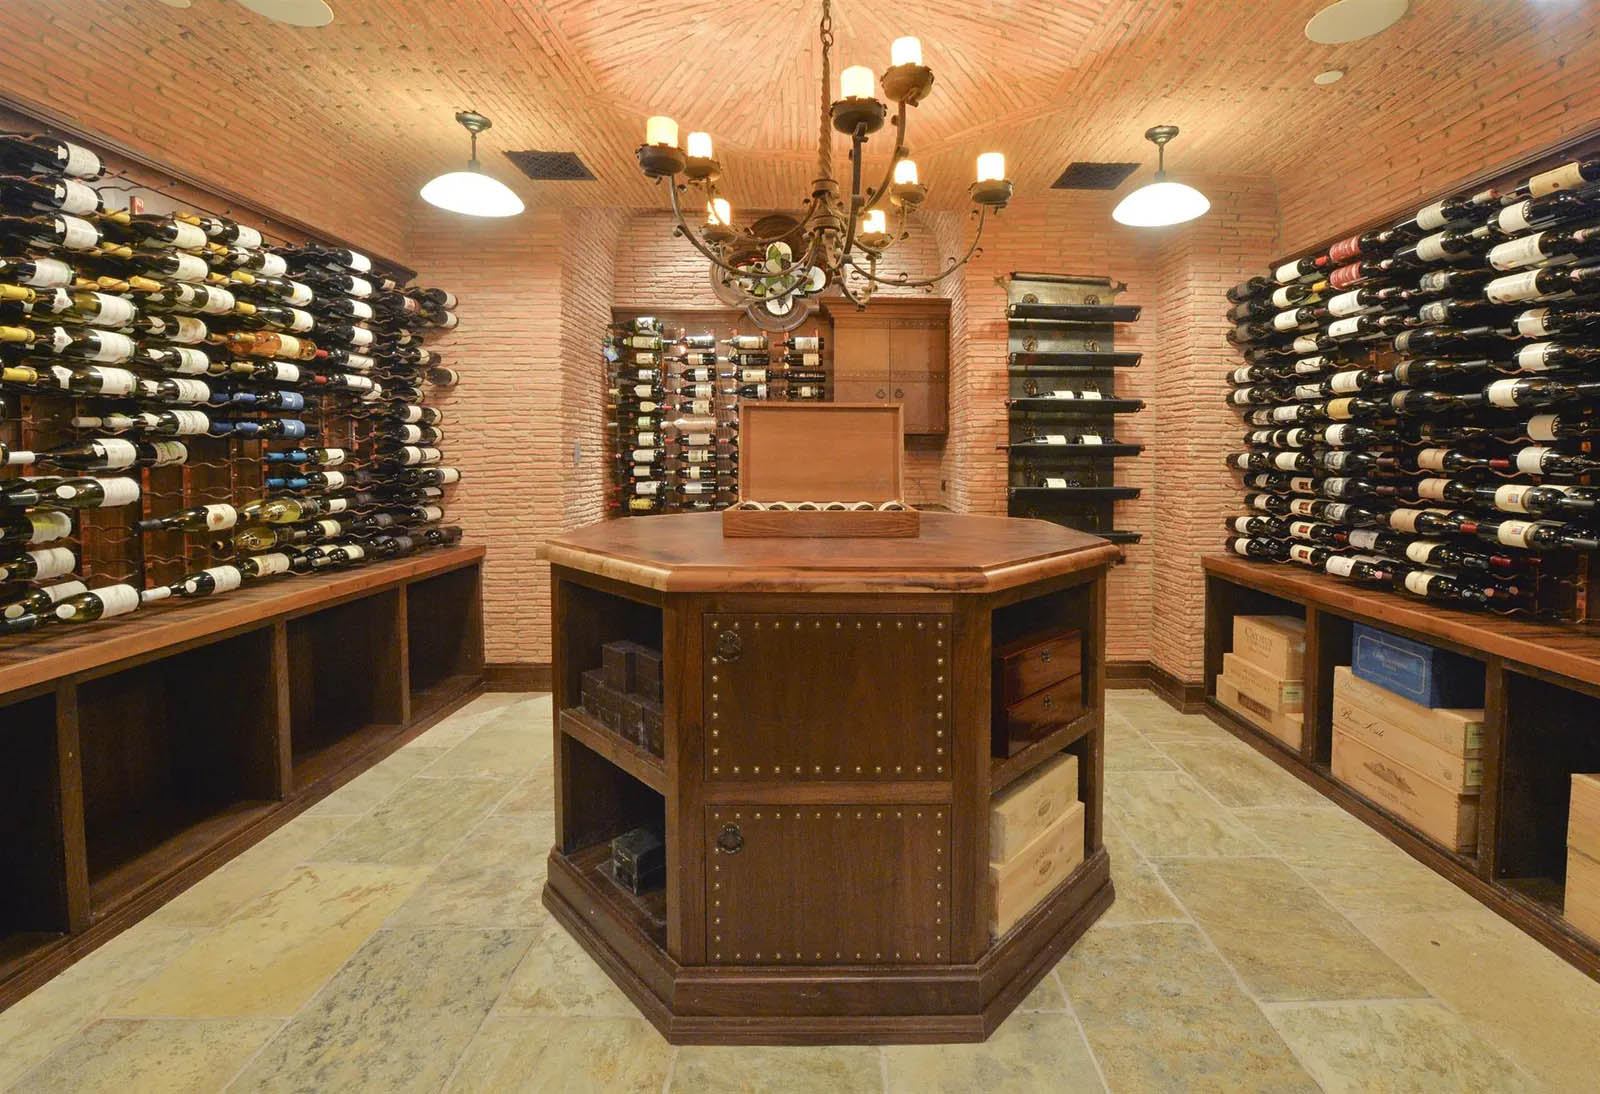 Beautiful wine room design with brick walls and ceiling.